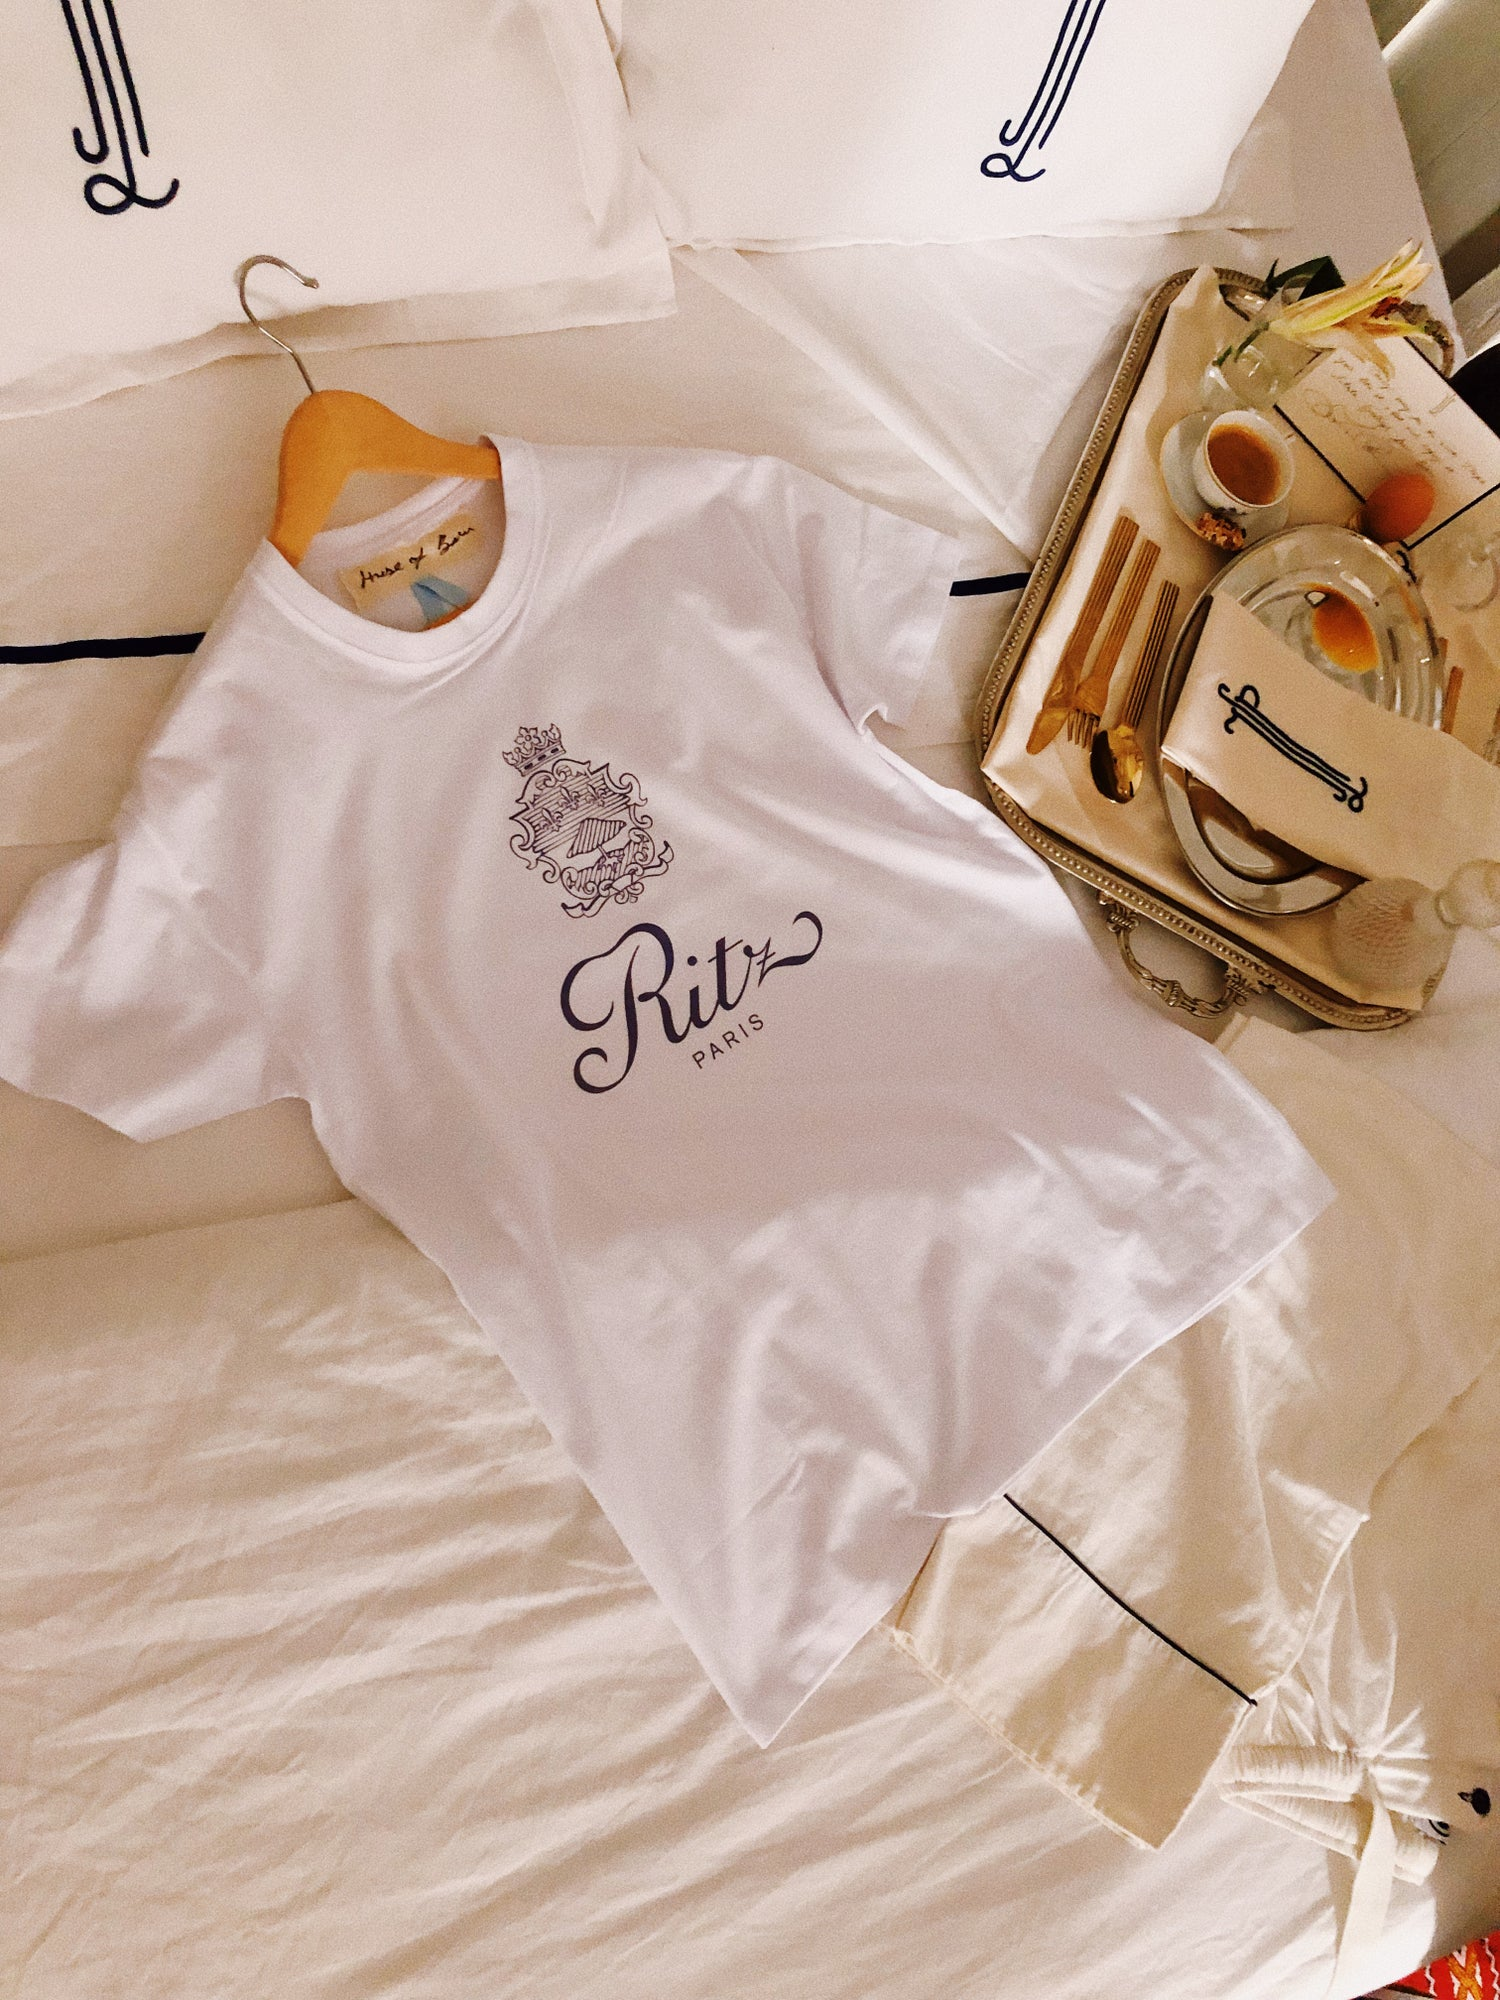 Image of Ritz Hotel T-shirt